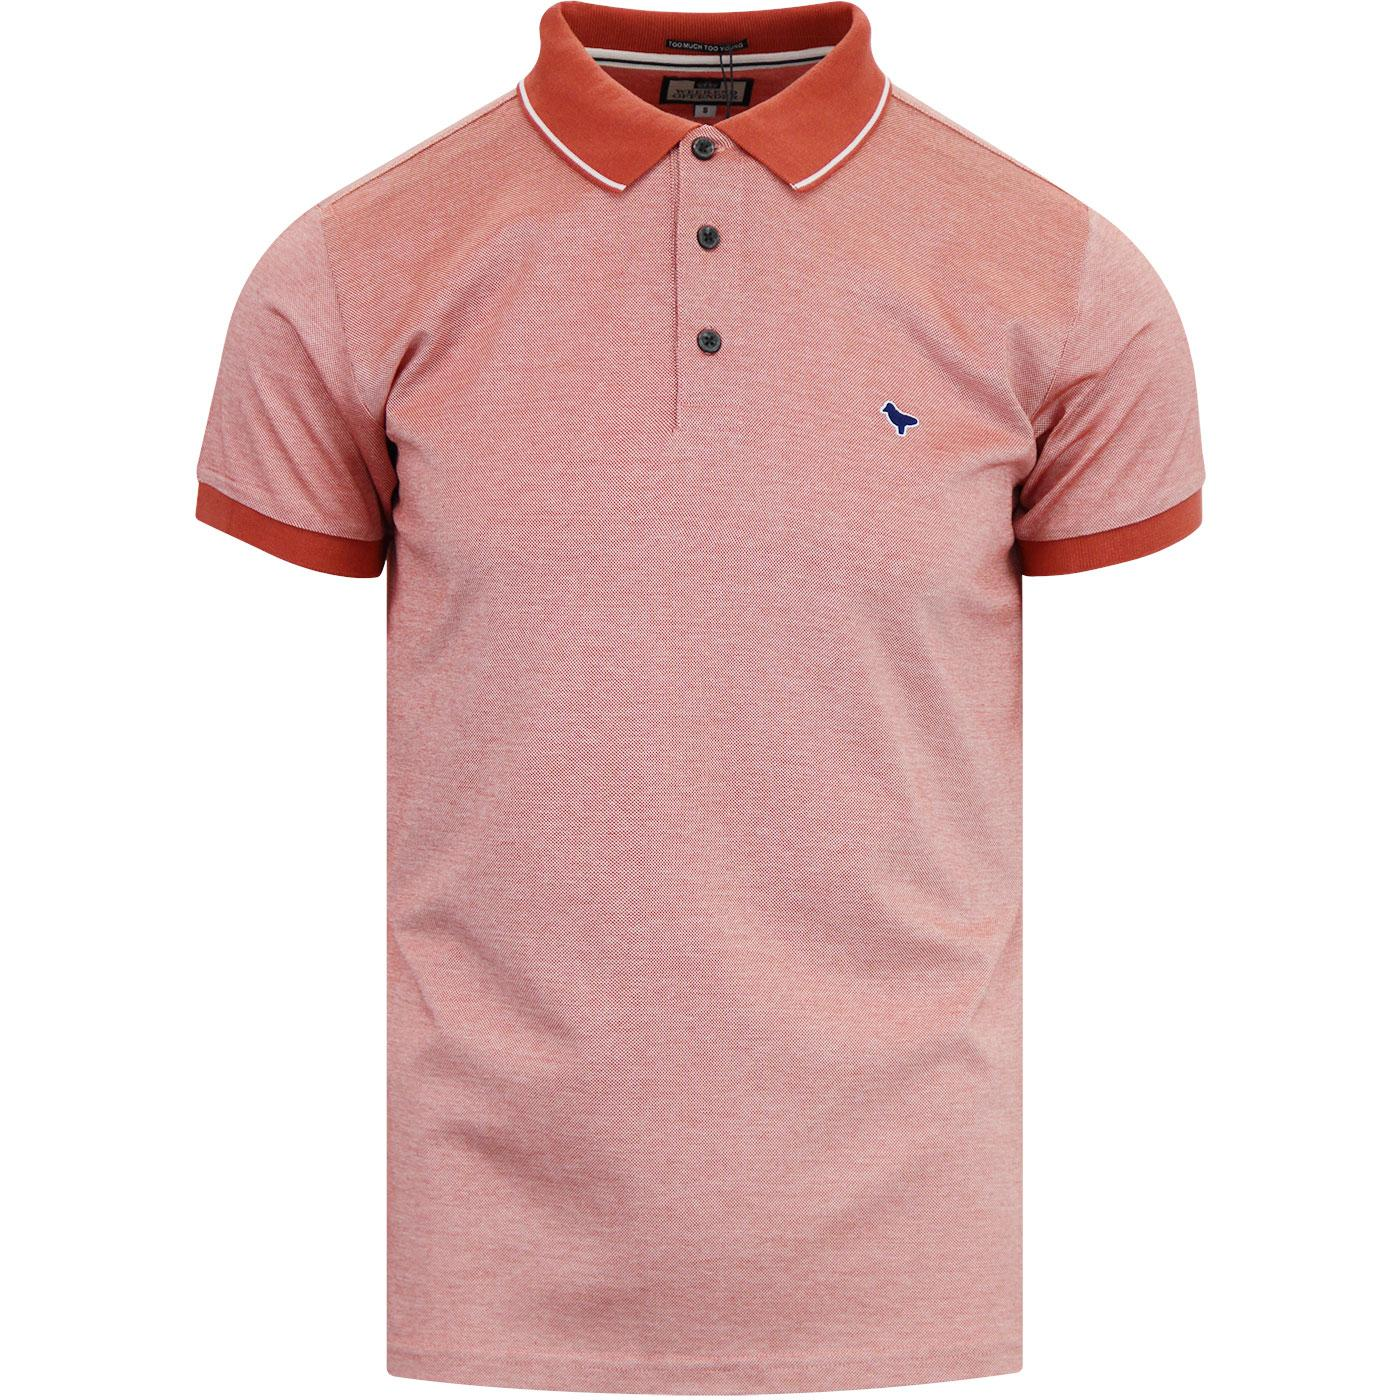 Dell Anna WEEKEND OFFENDER Mod Polo Shirt (Cosmos)